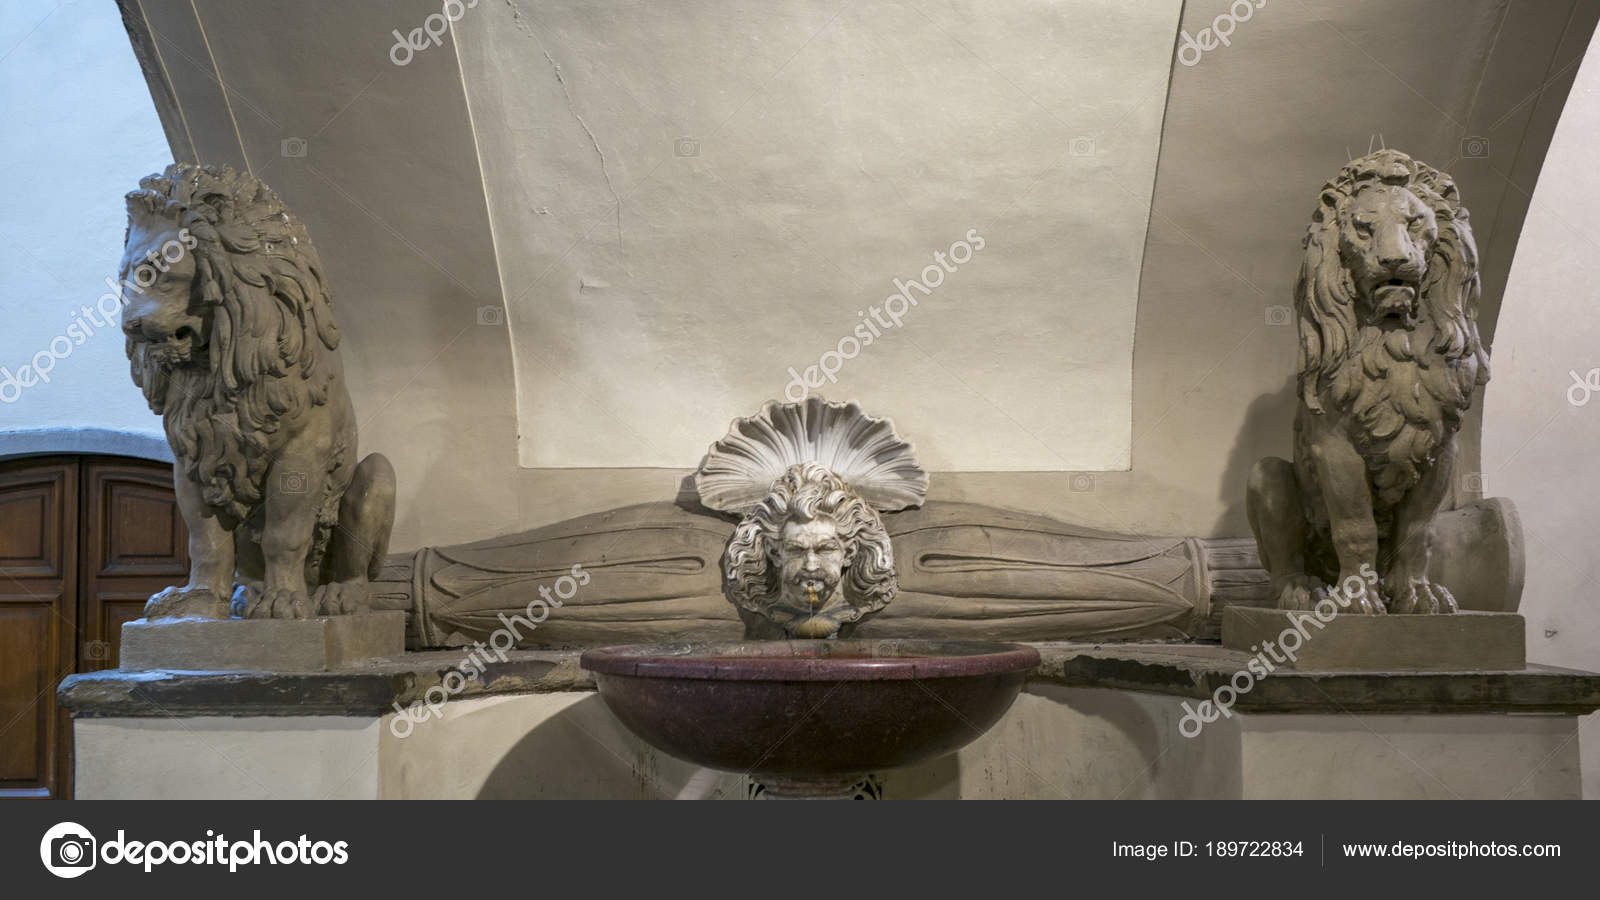 Lions Fountain Florence.Statue Lions Fountain Florence Tuscany Italy Stock Photo